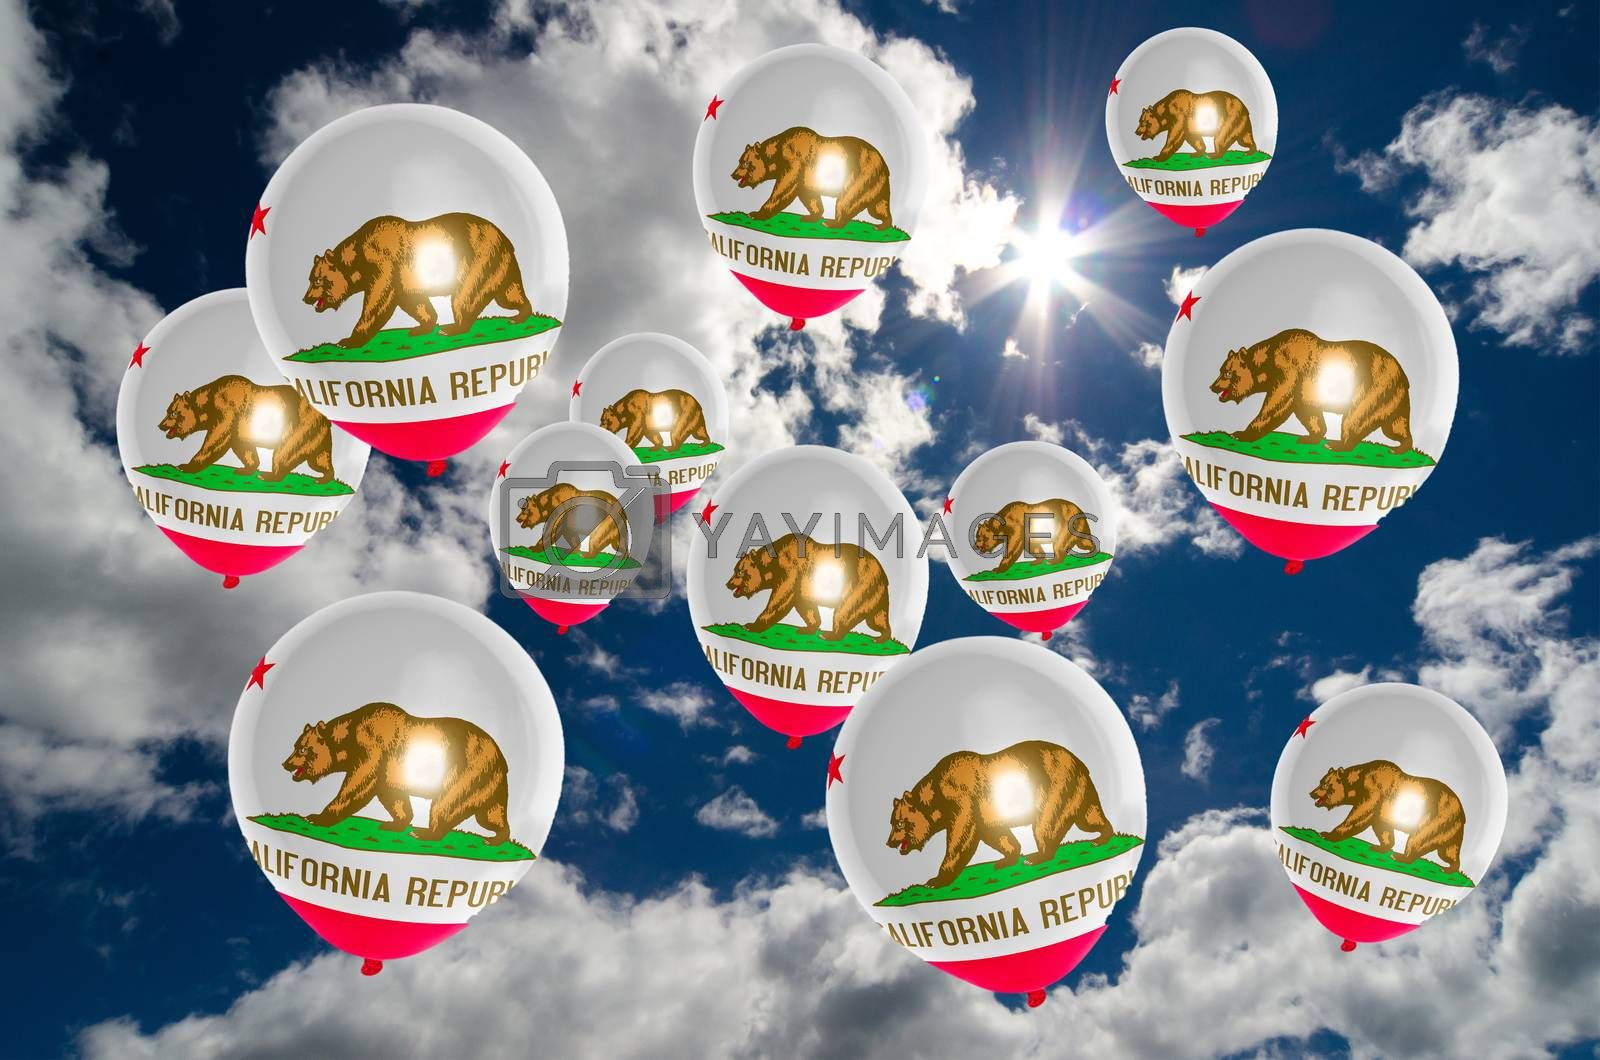 many ballons in colors of california flag flying on sky